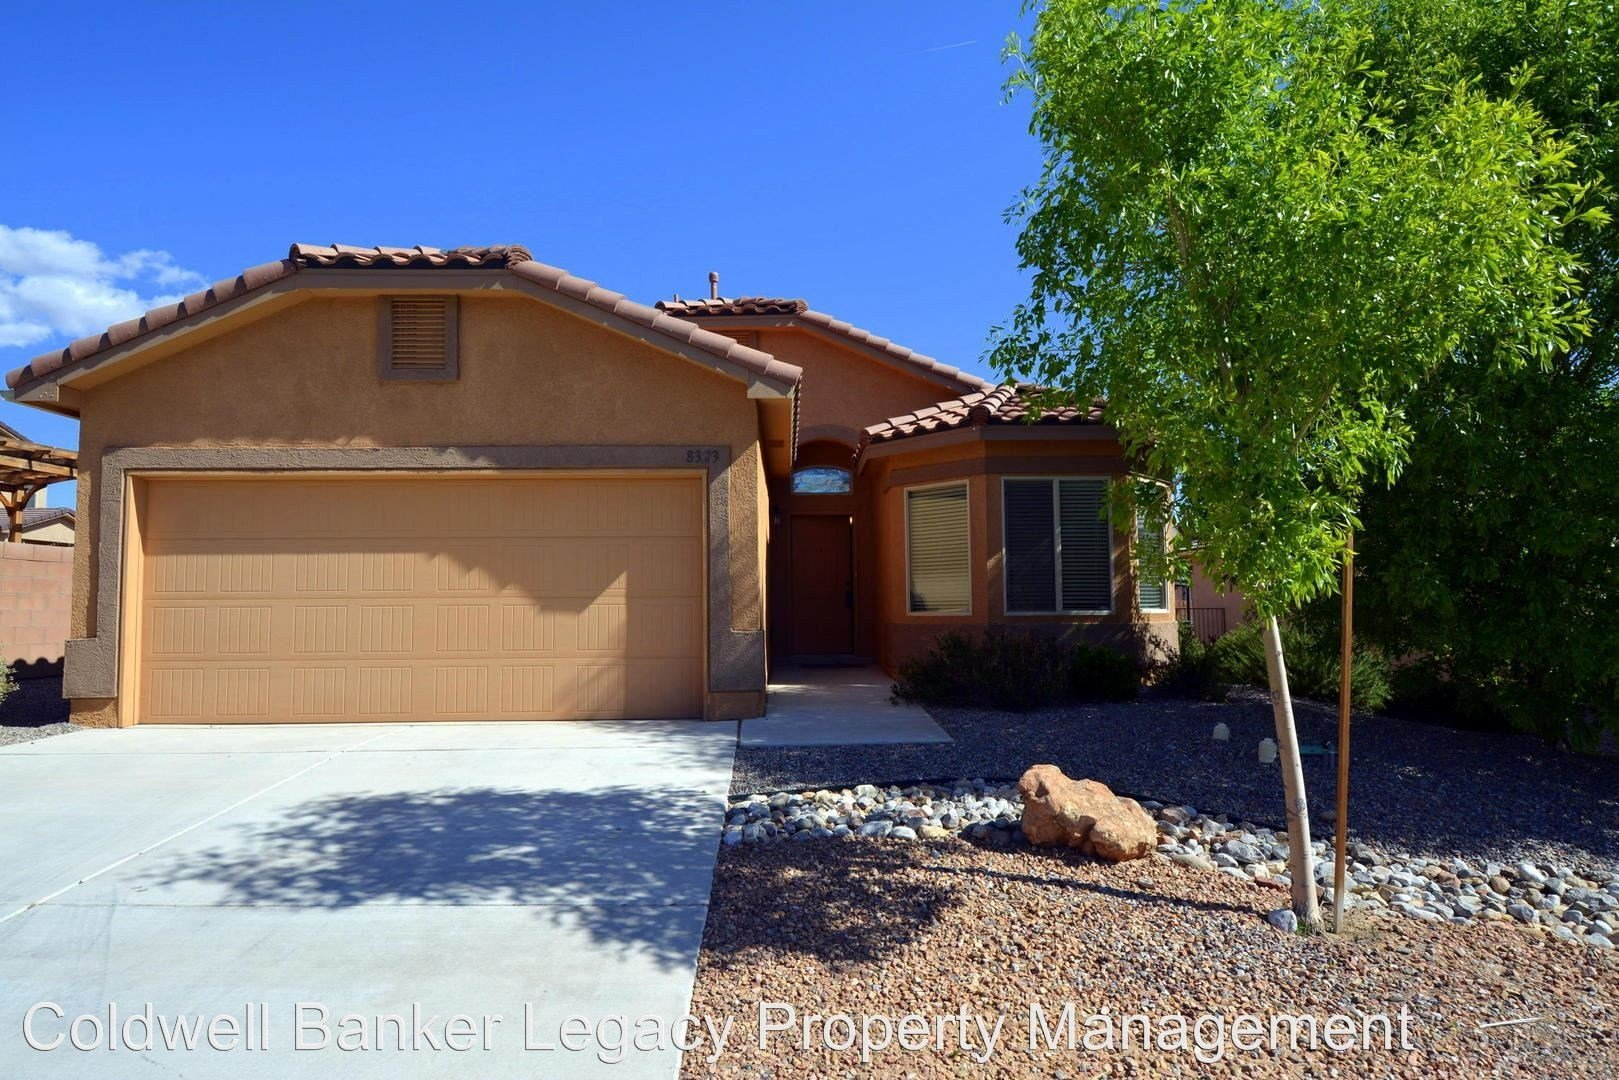 Best 8323 Chilte Pine Rd Nw Albuquerque Nm 87120 3 Bedroom With Pictures